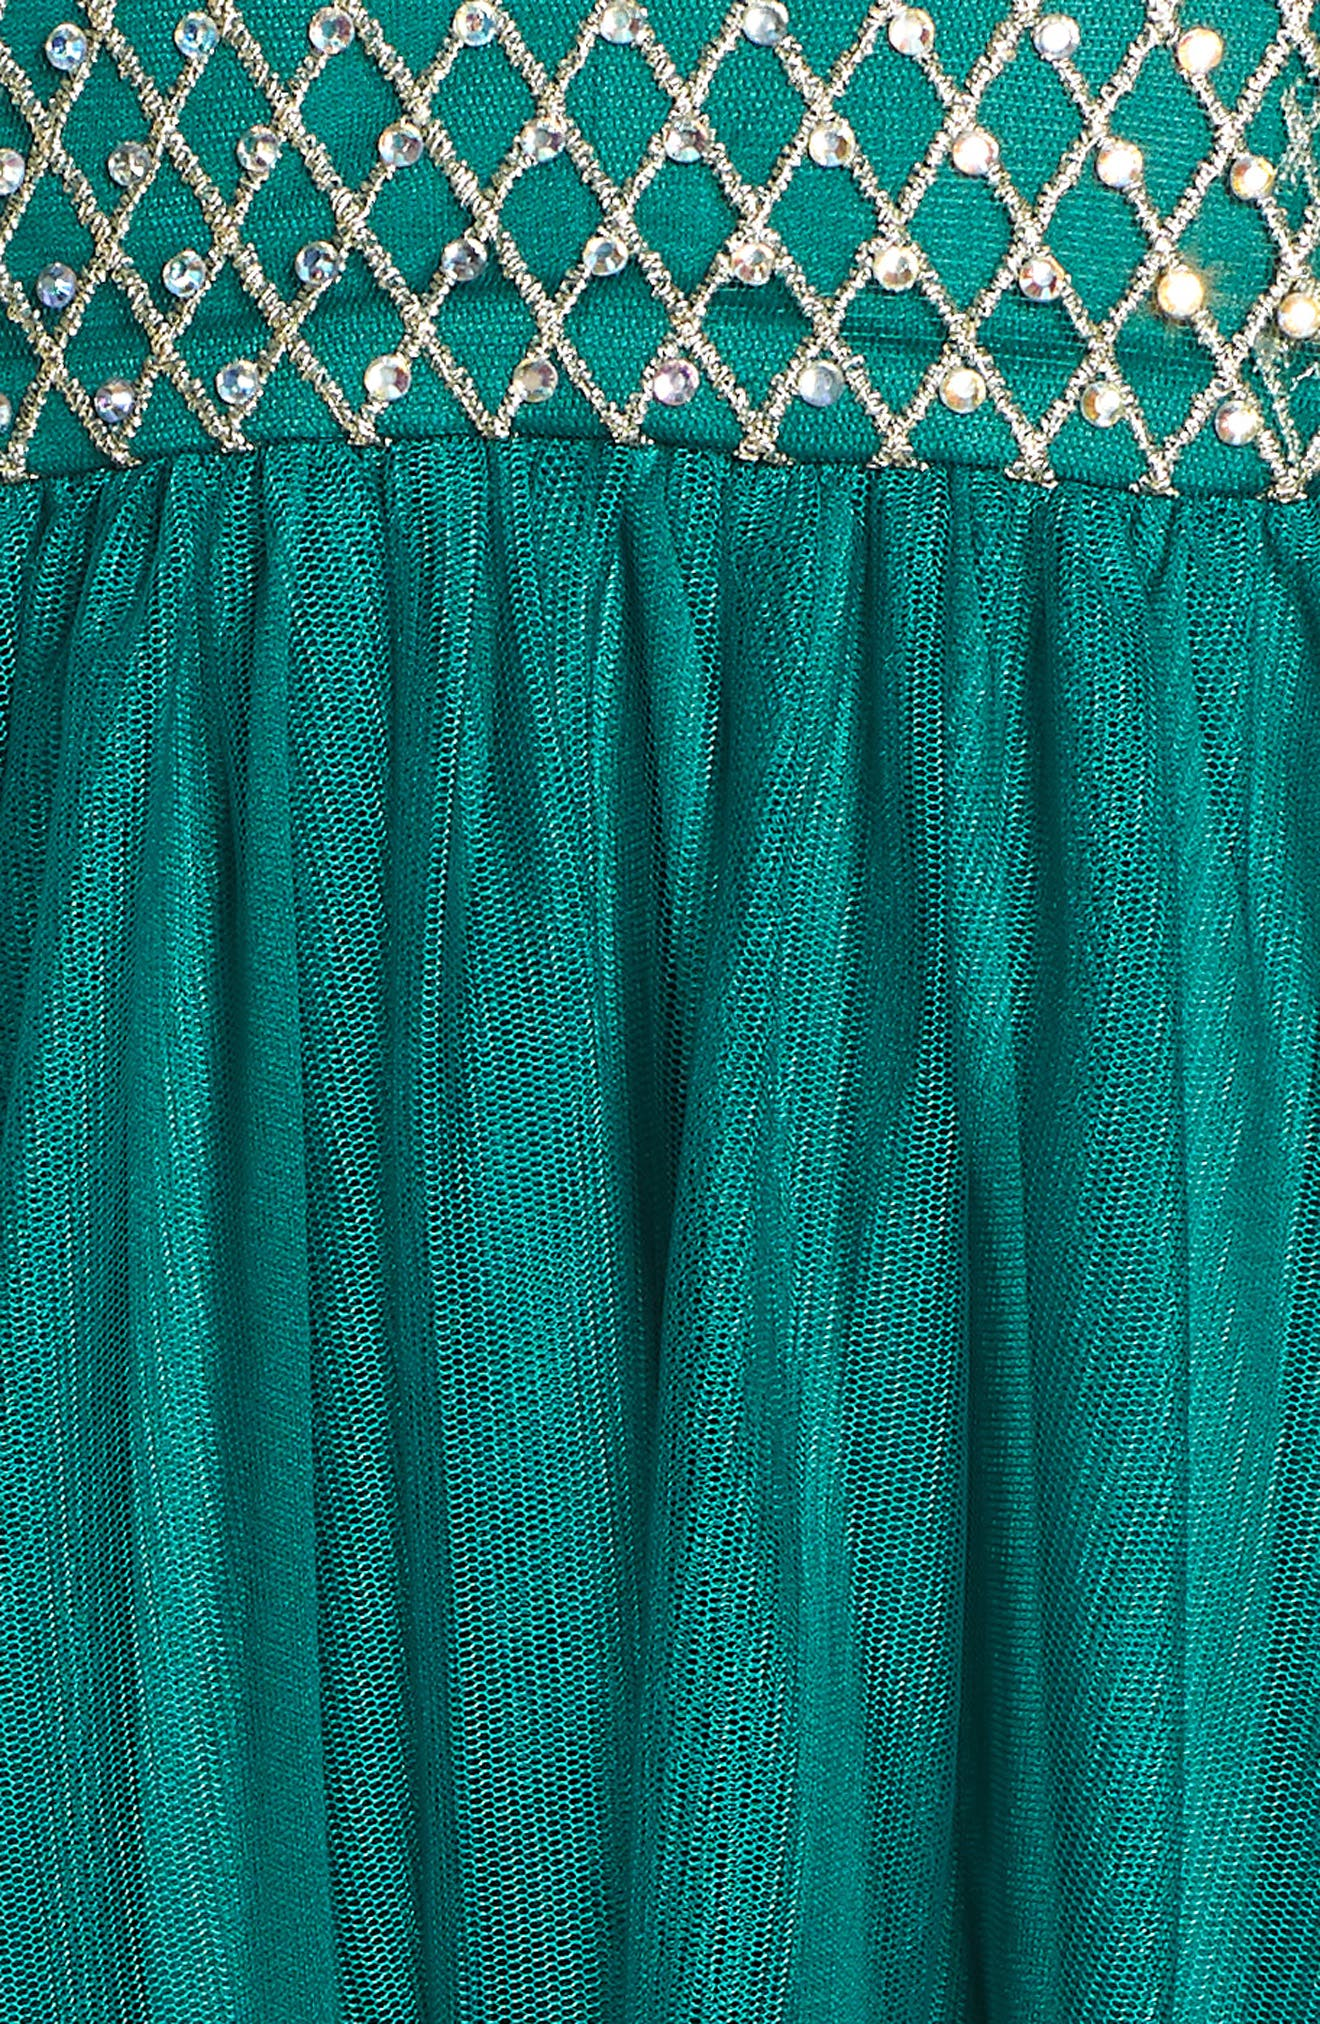 Embellished Bodice Gown,                             Alternate thumbnail 6, color,                             EVERGREEN